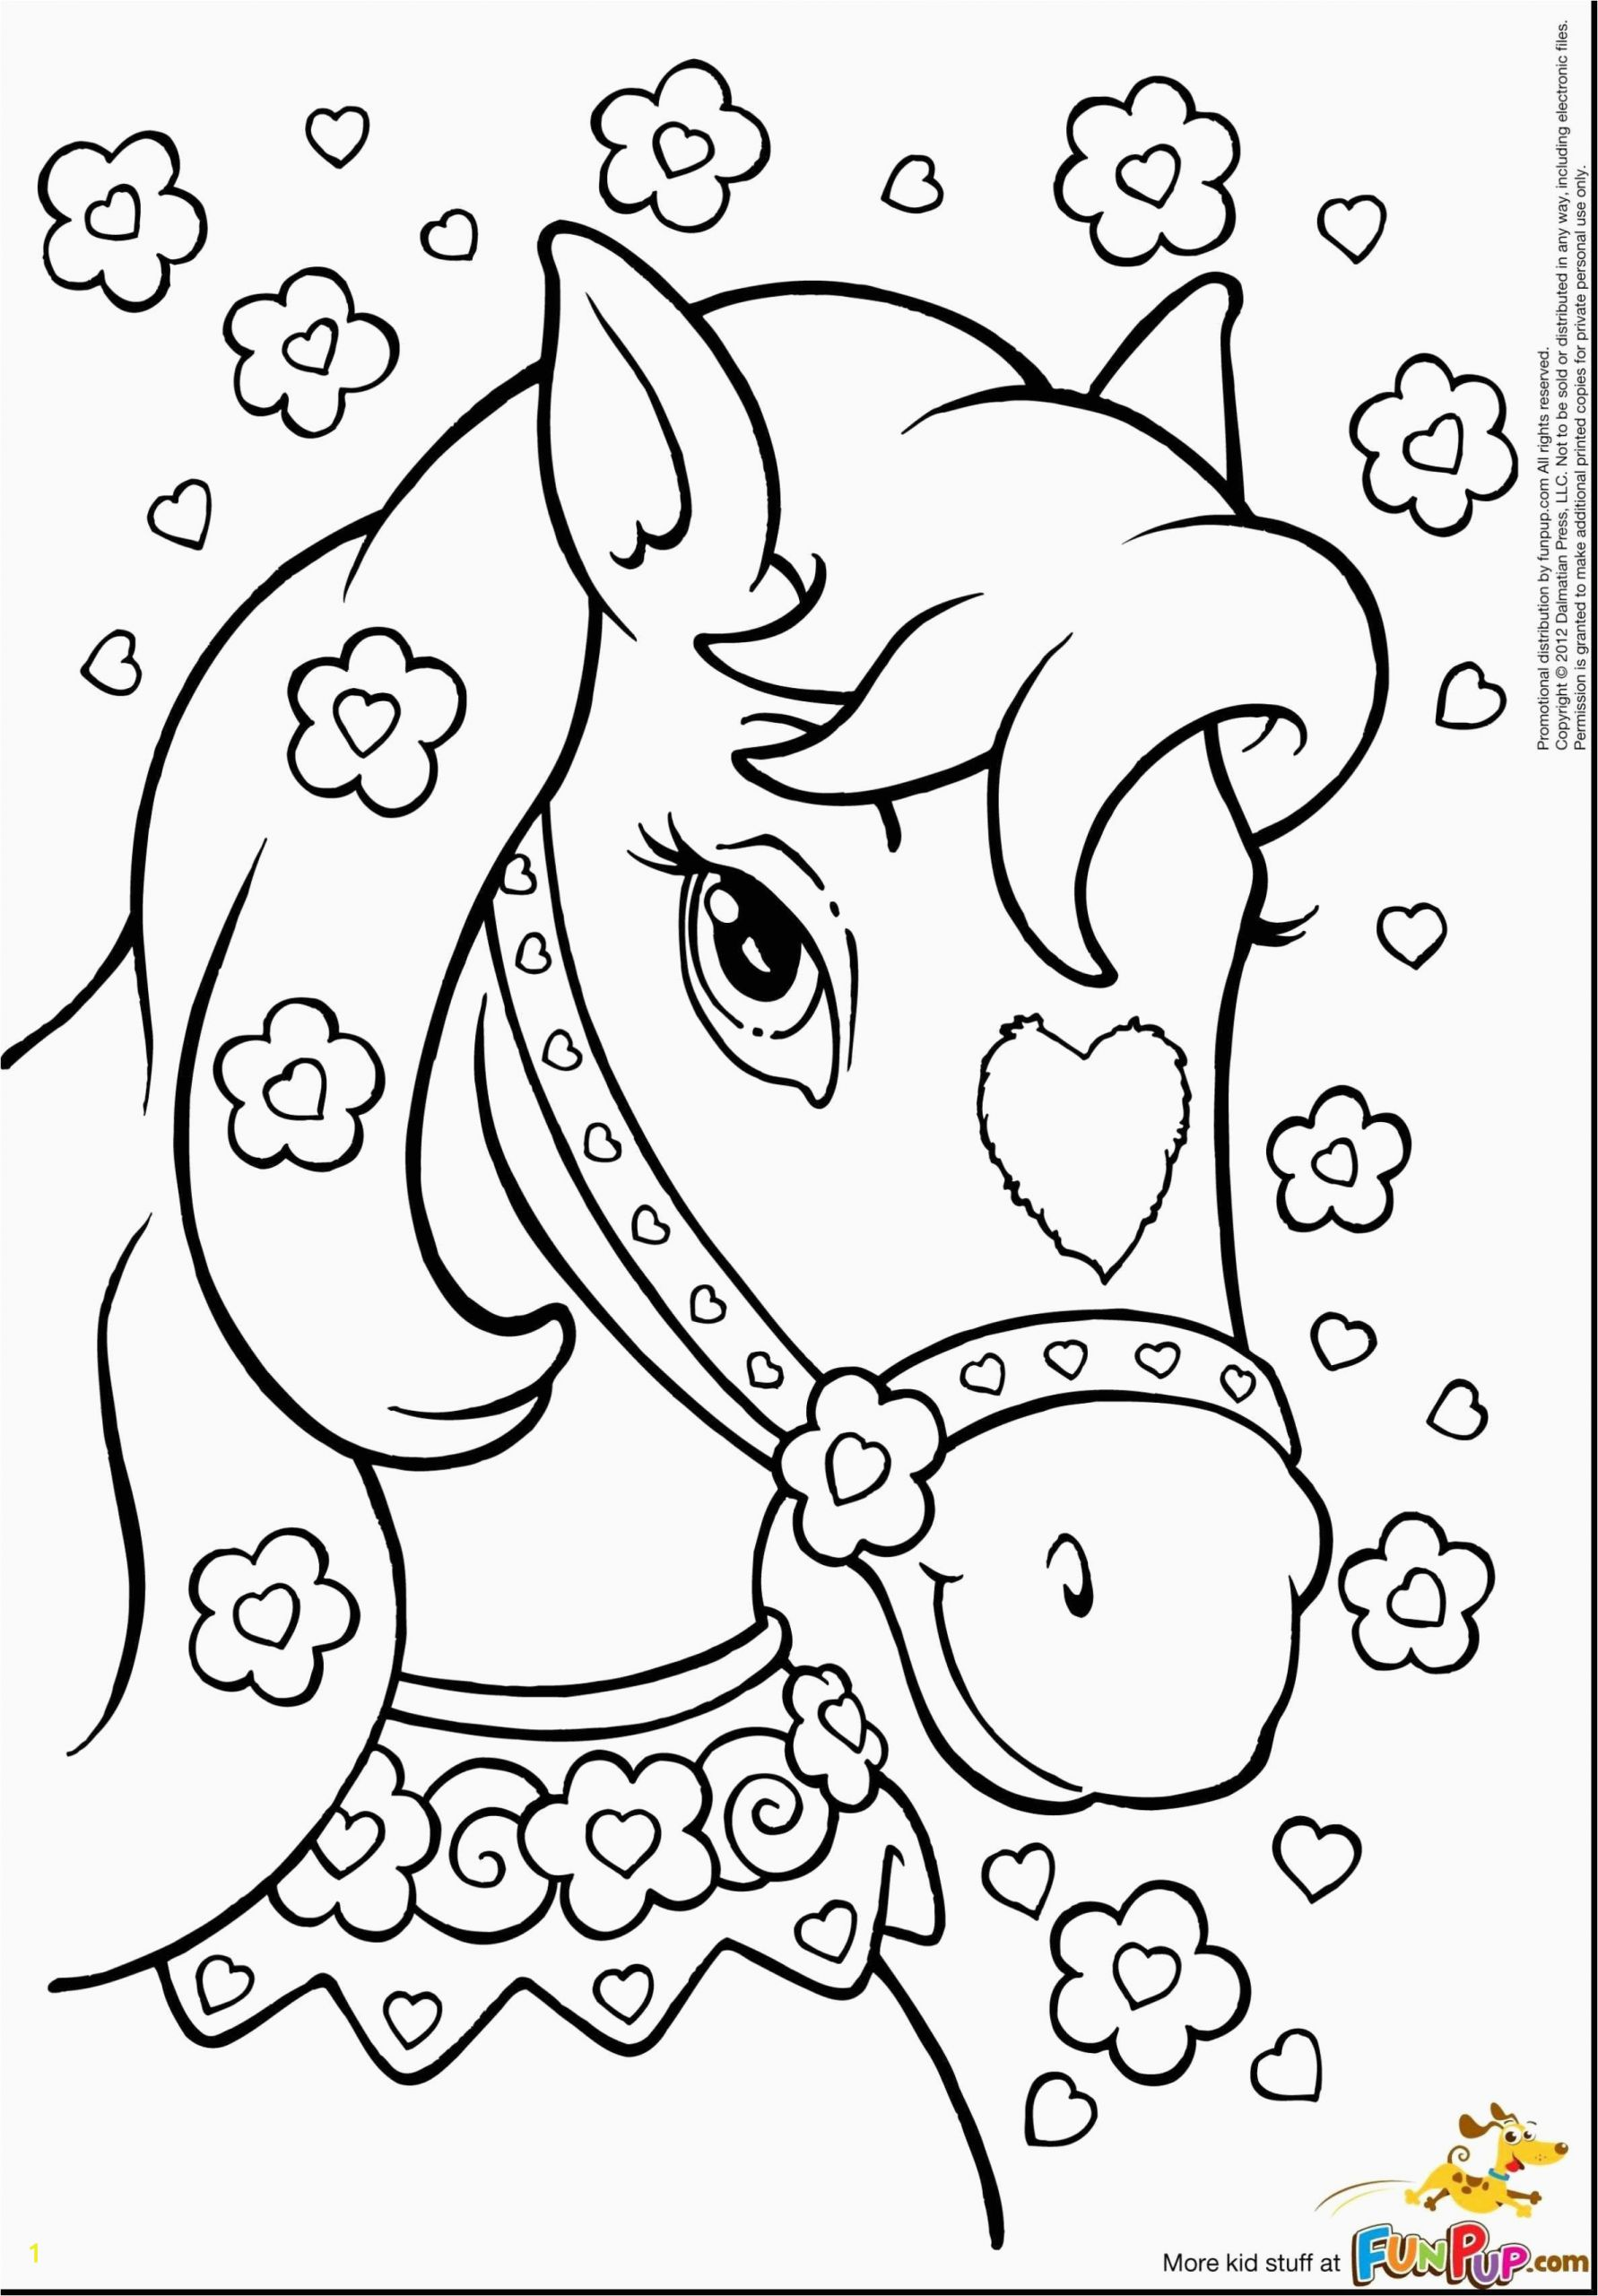 Disney Movie Coloring Pages Coloring African Animals Beautiful Disney Princesses